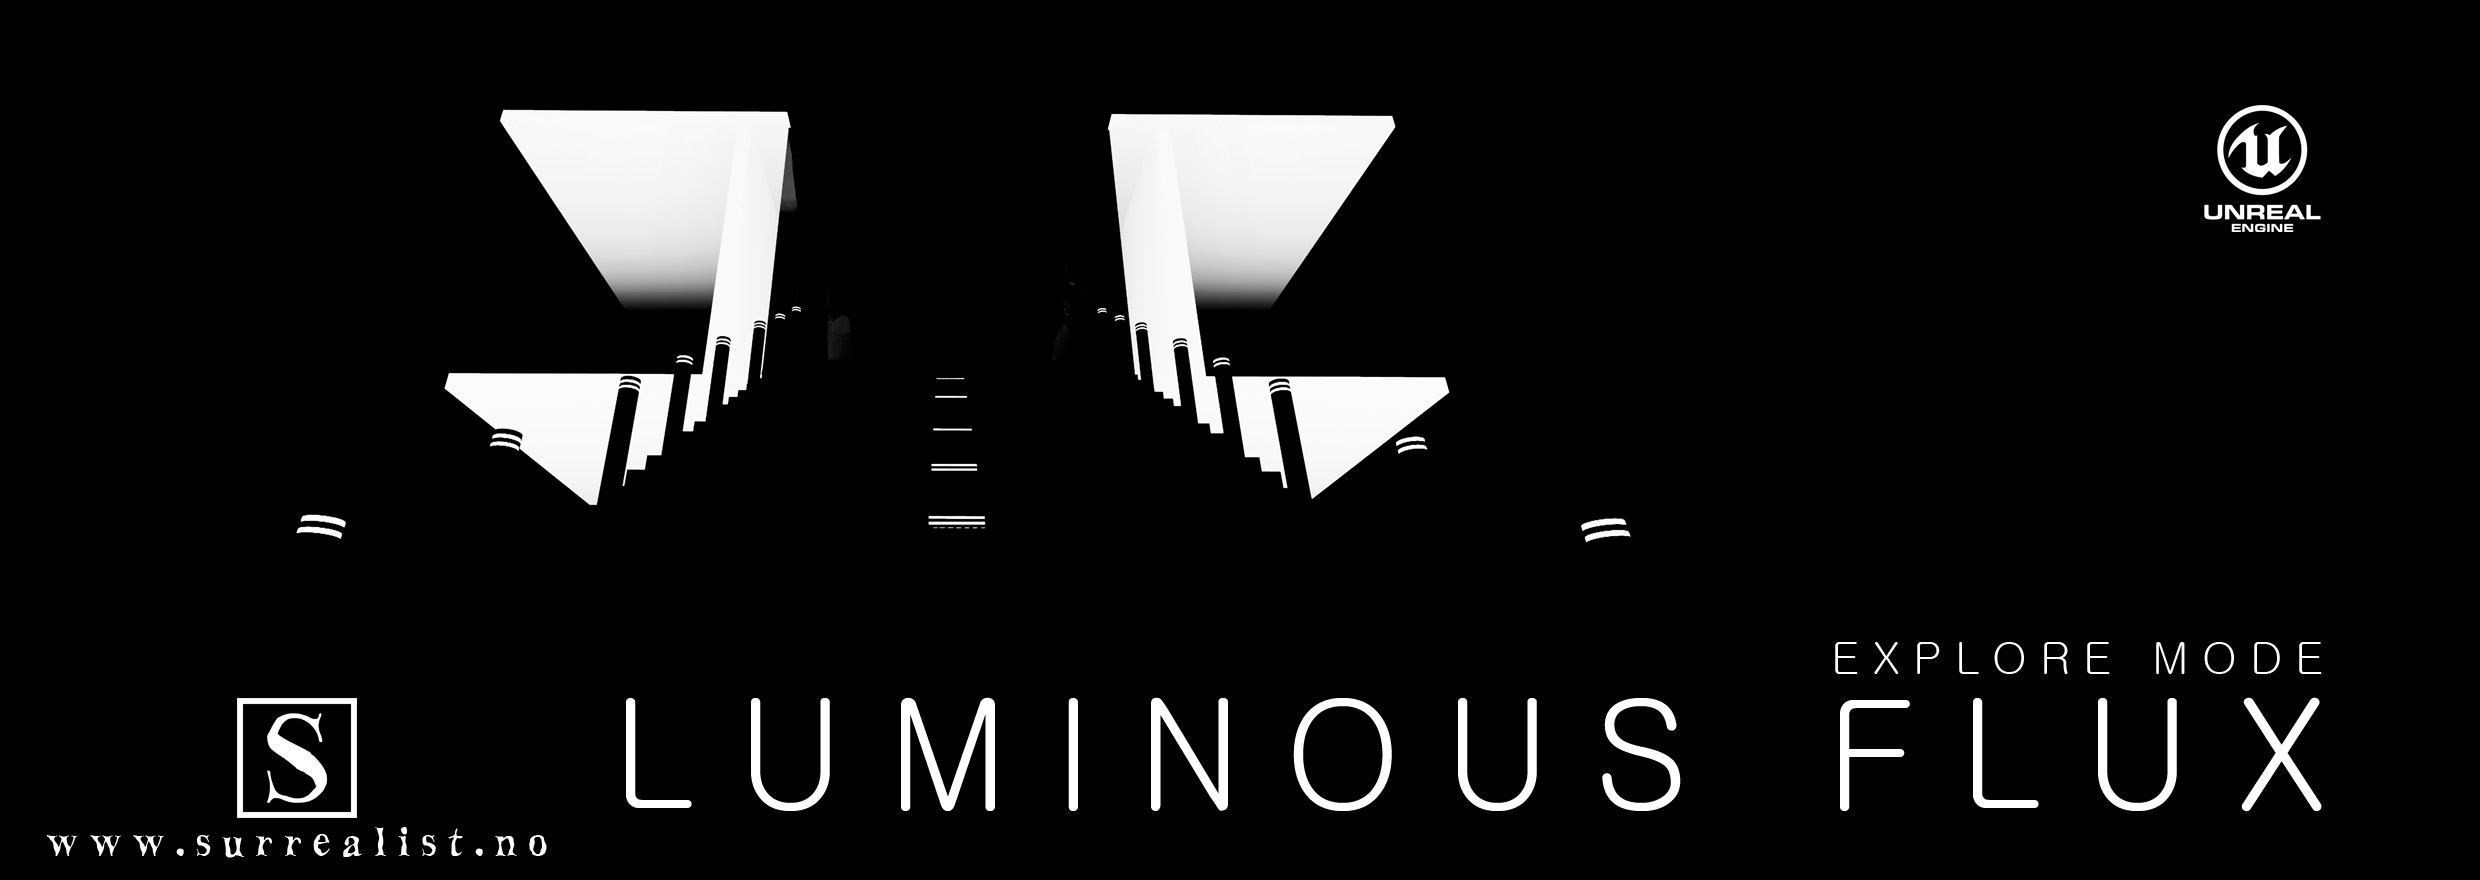 Luminous Flux - Explore Mode